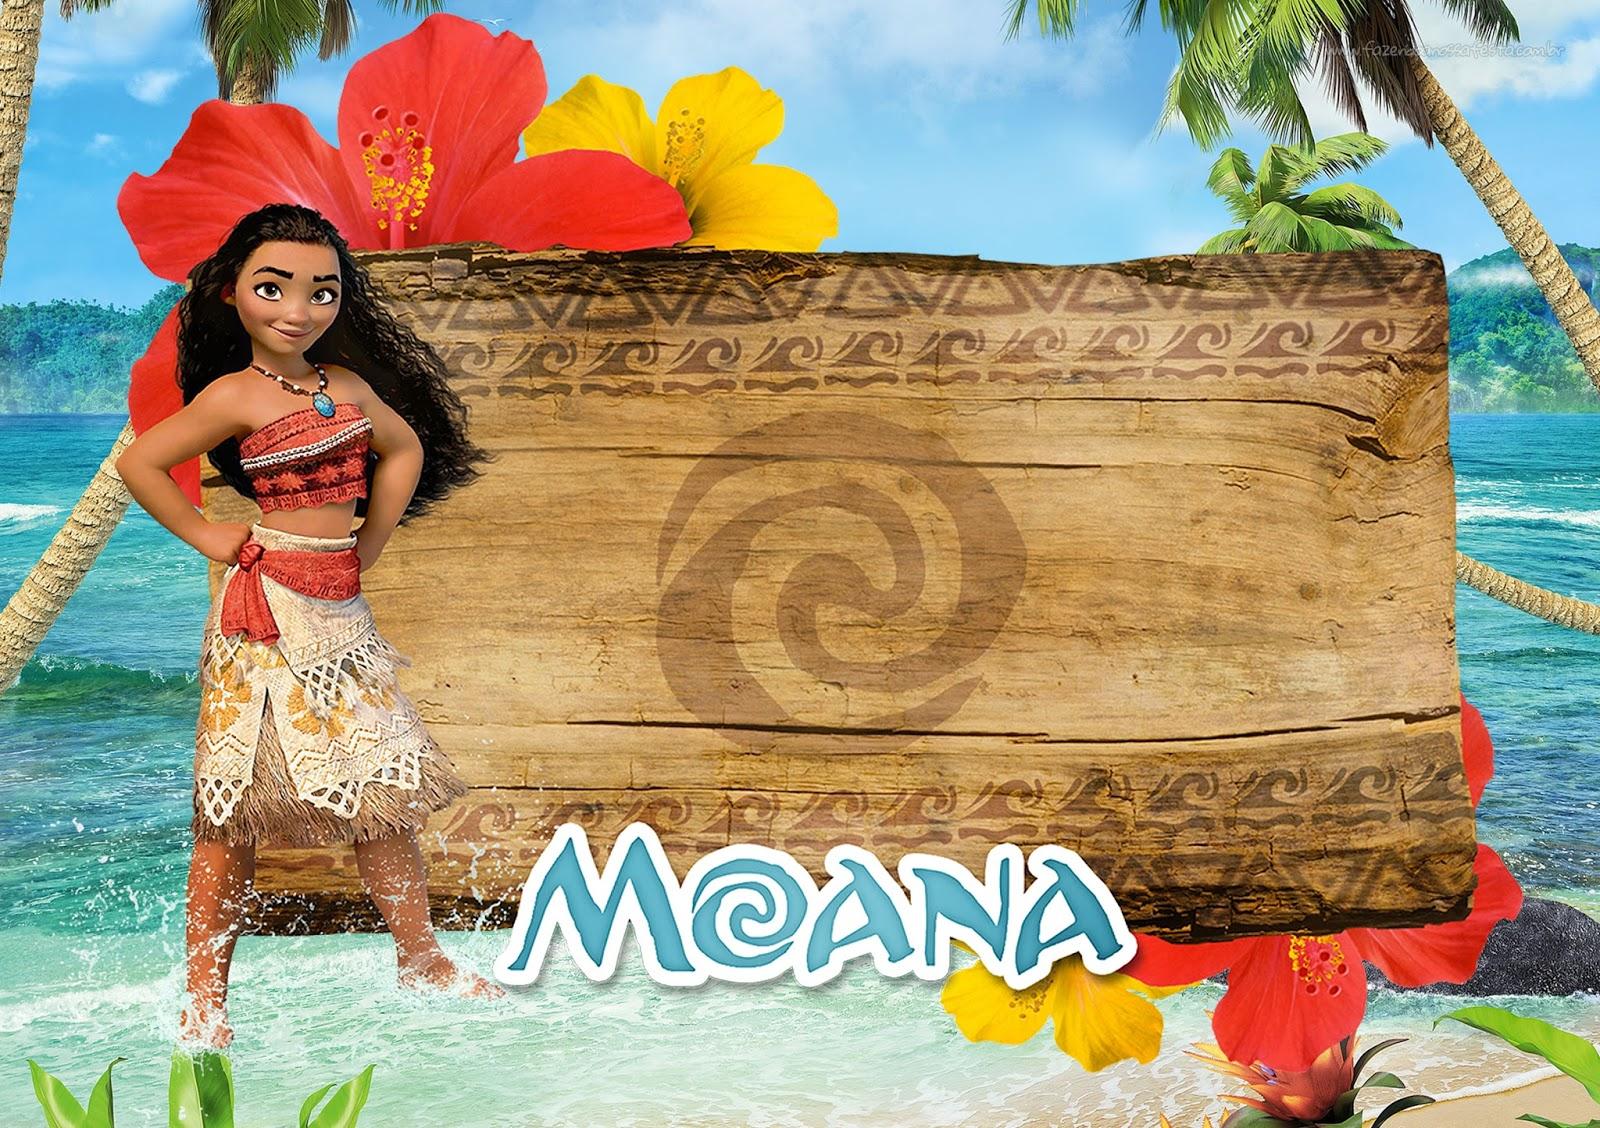 image regarding Printable Moana Invitations identified as Moana: Cost-free Printable Invites. - Oh My Fiesta! within just english